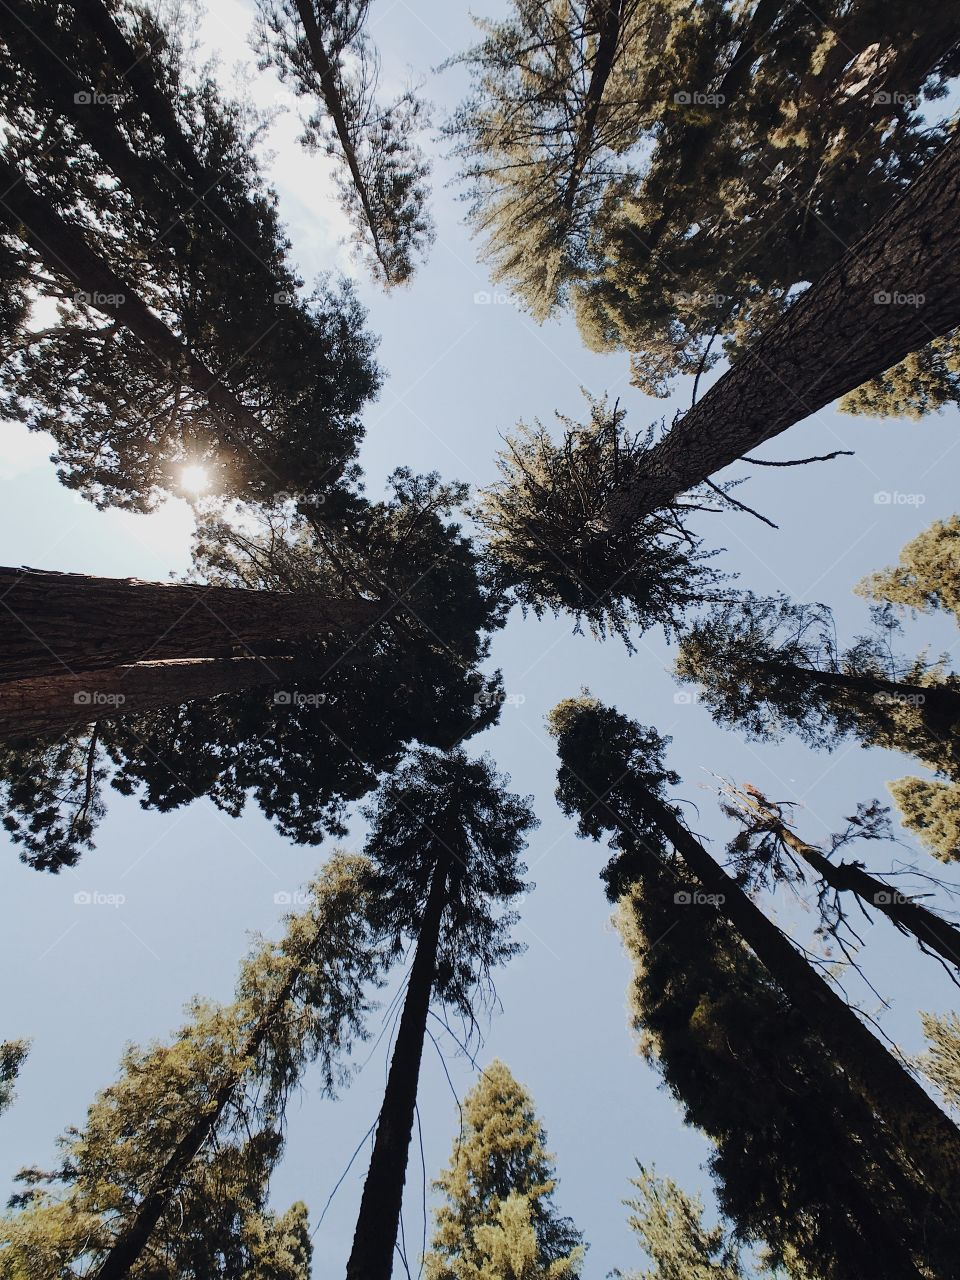 Looking up into the sky through the massive Sequoia trees in Sequoia National Park in California.